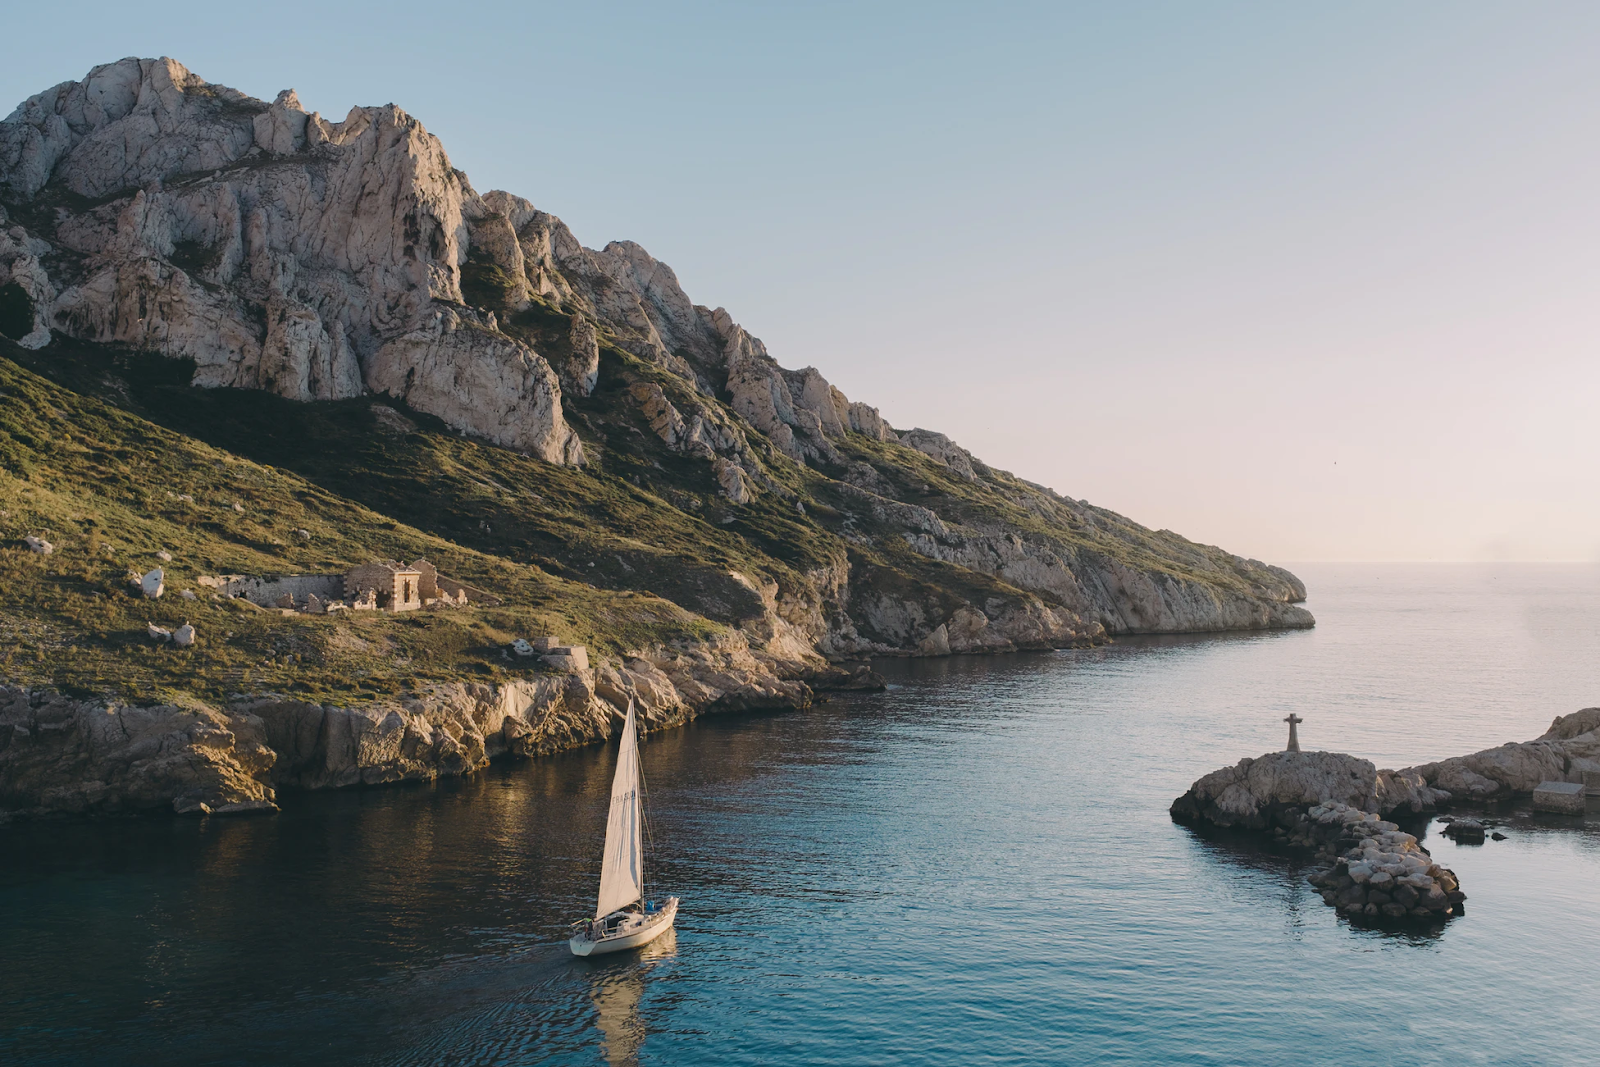 View of the Calanques at sunset time with a boat passing by